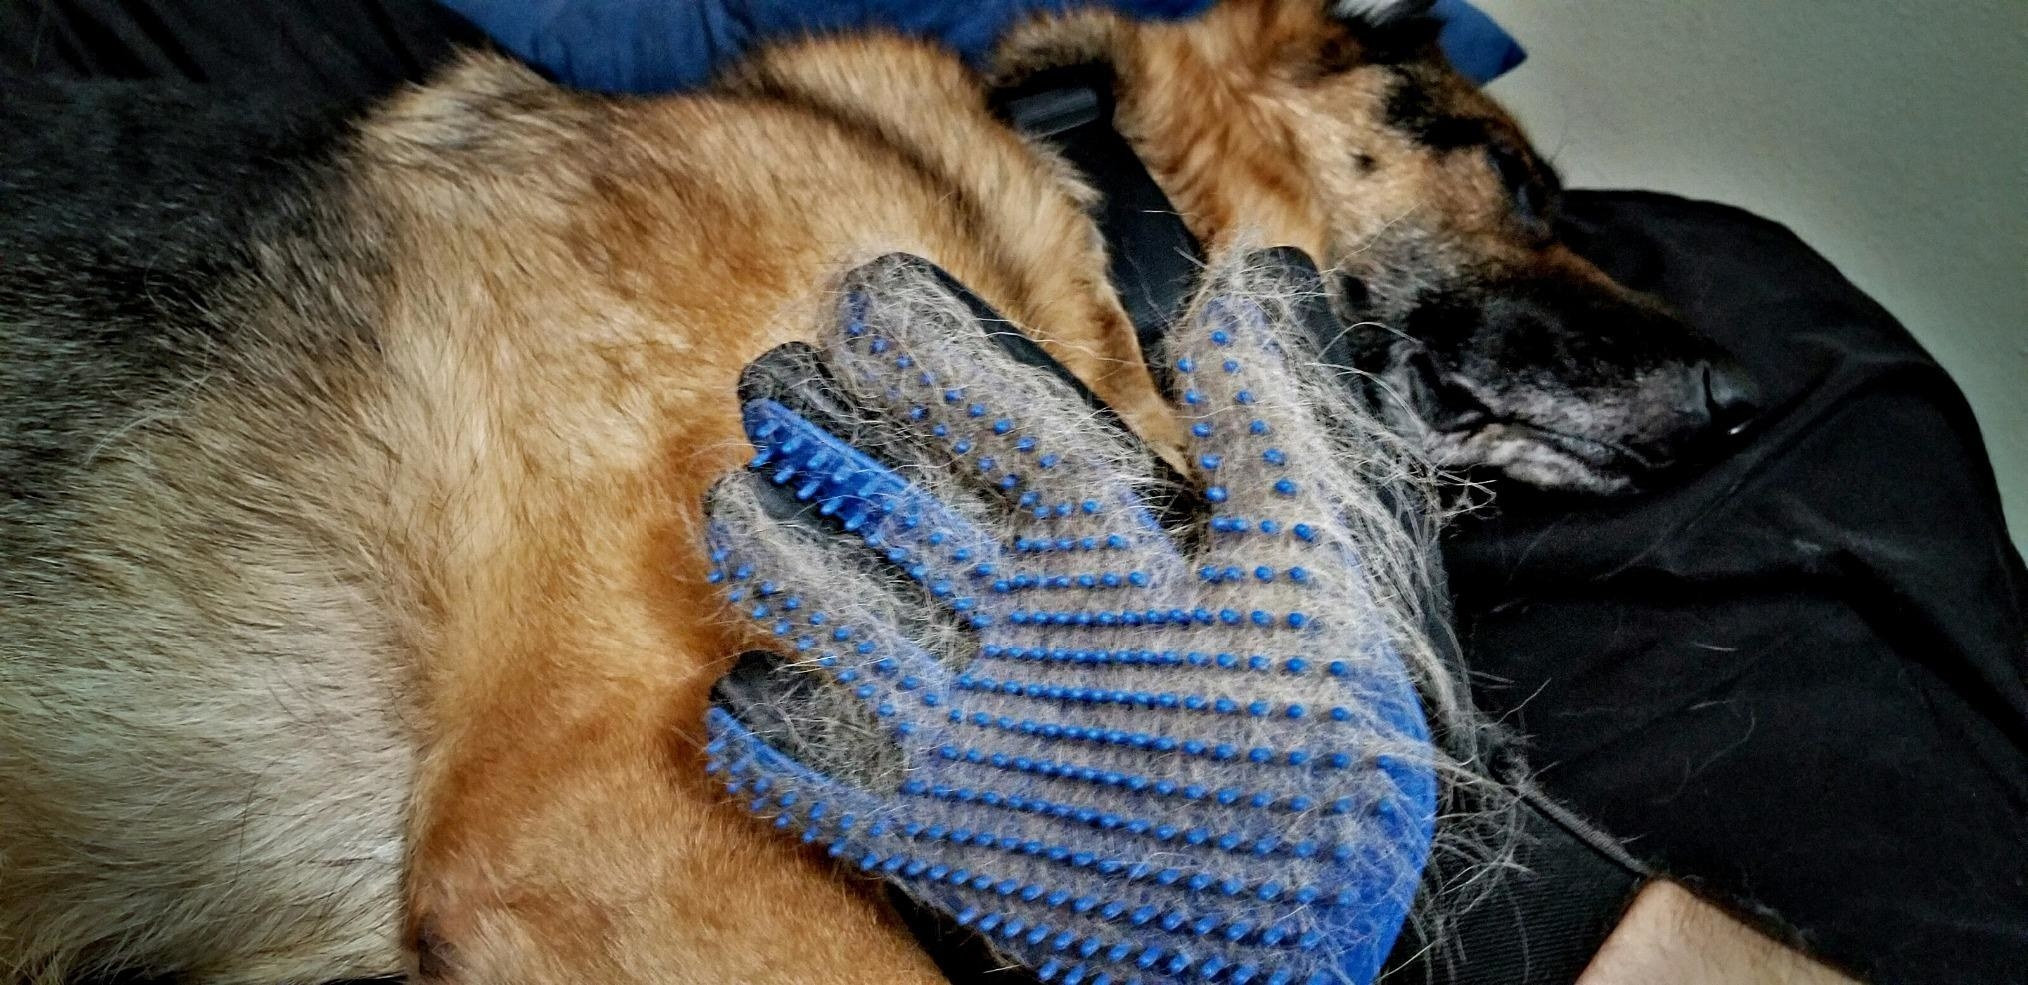 The glove, which has small nubs to pick up the pet's loose fur from their coat